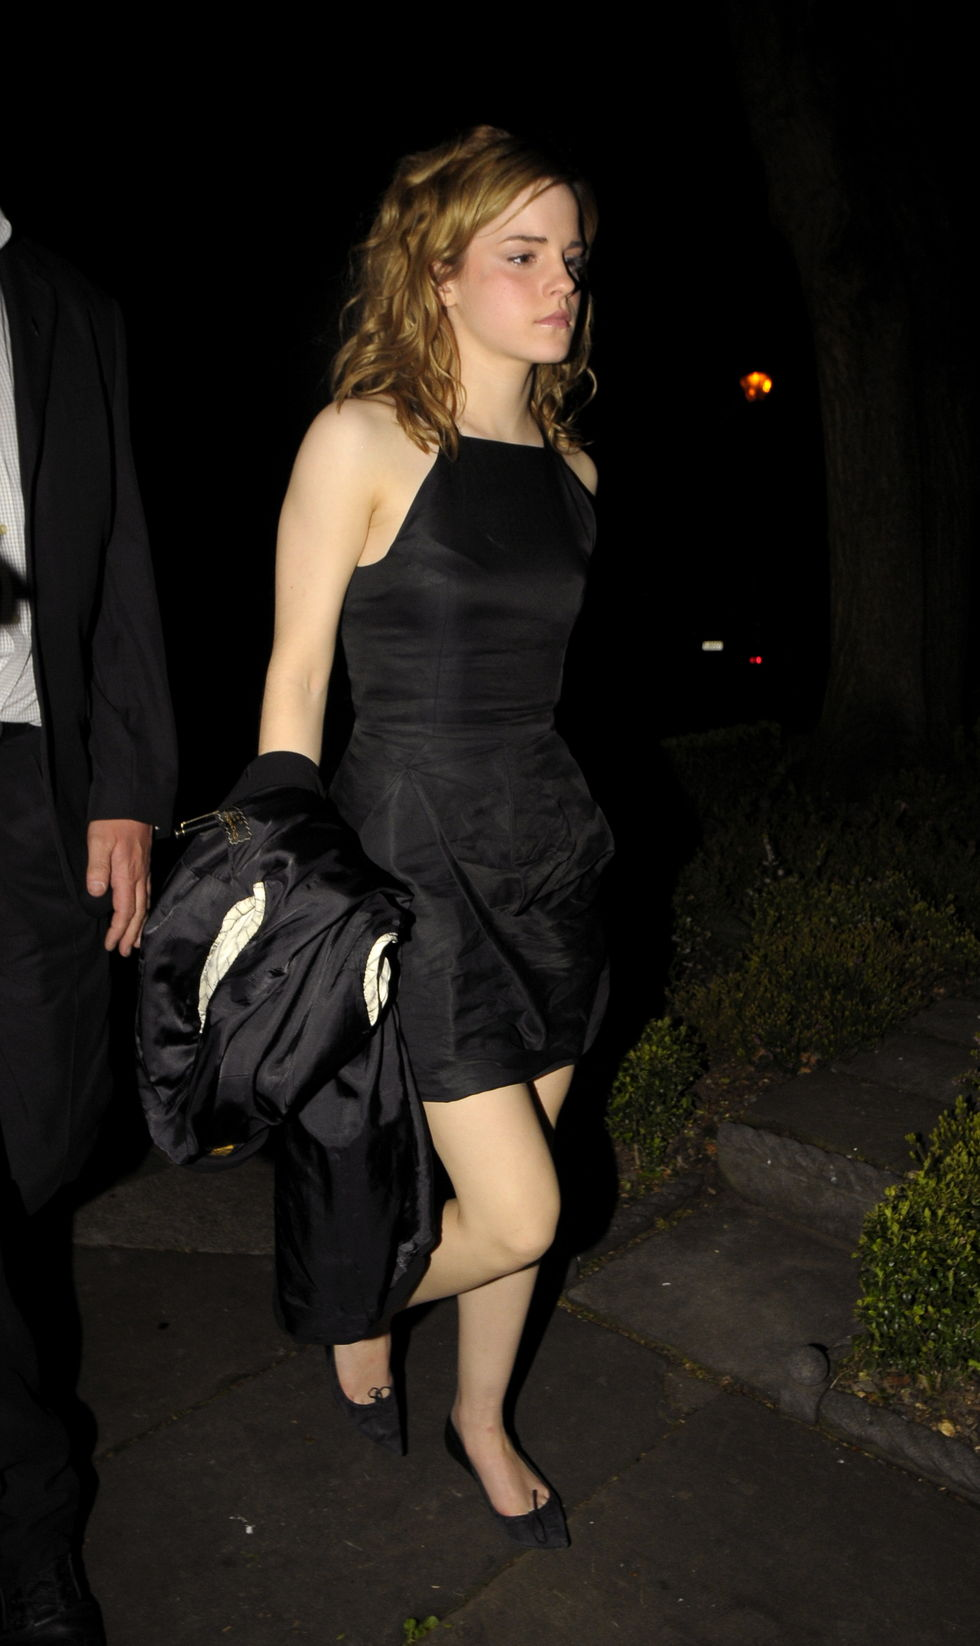 Emma watson 18th birthday upskirt photo